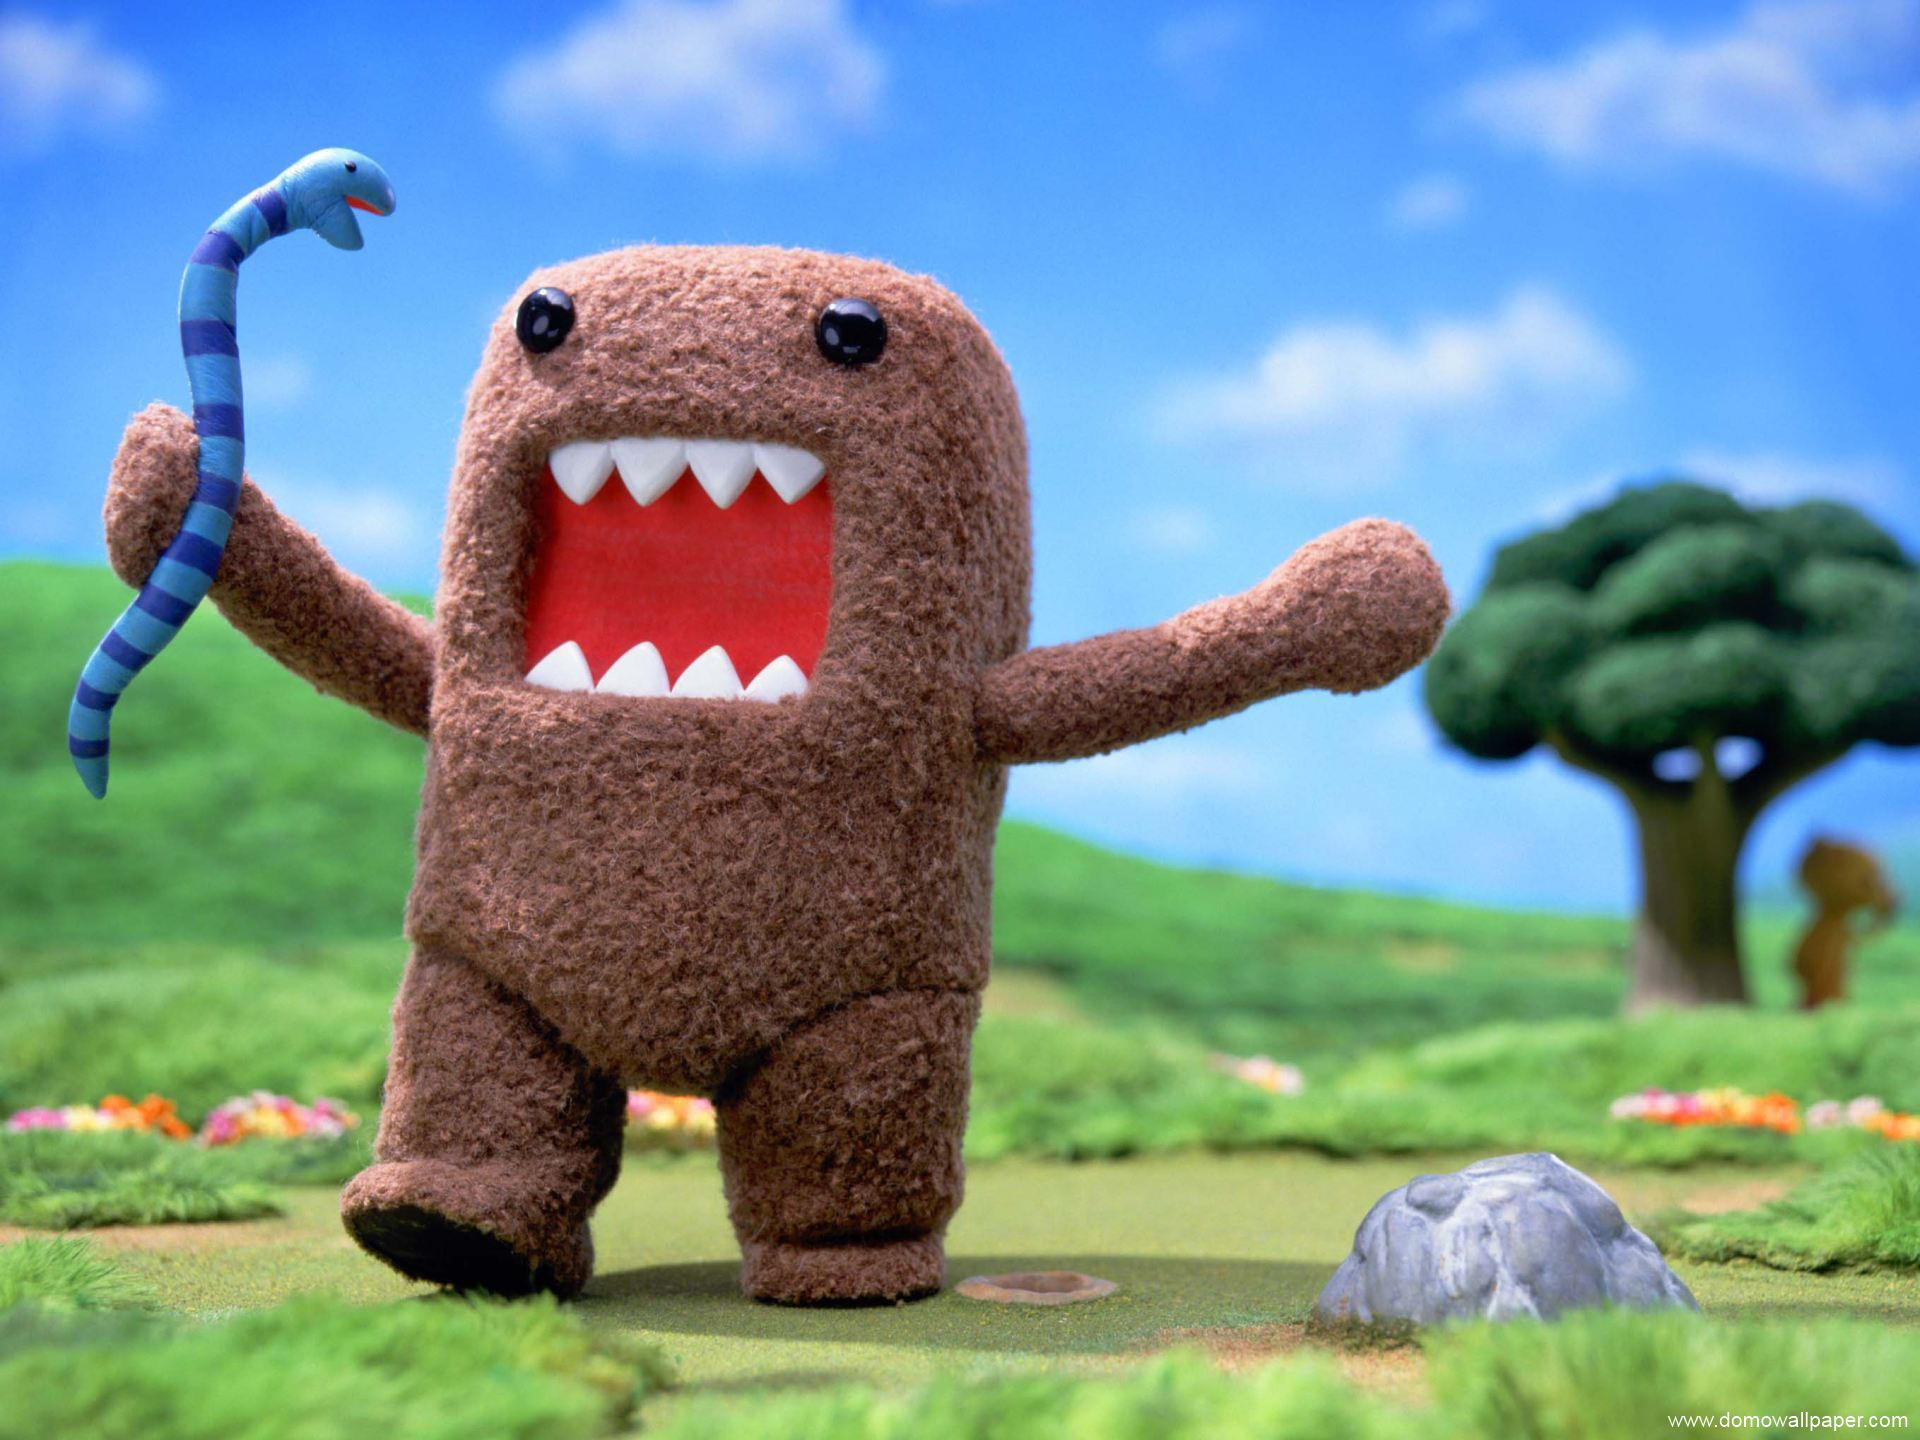 Domo wallpaper HD download 1920x1440